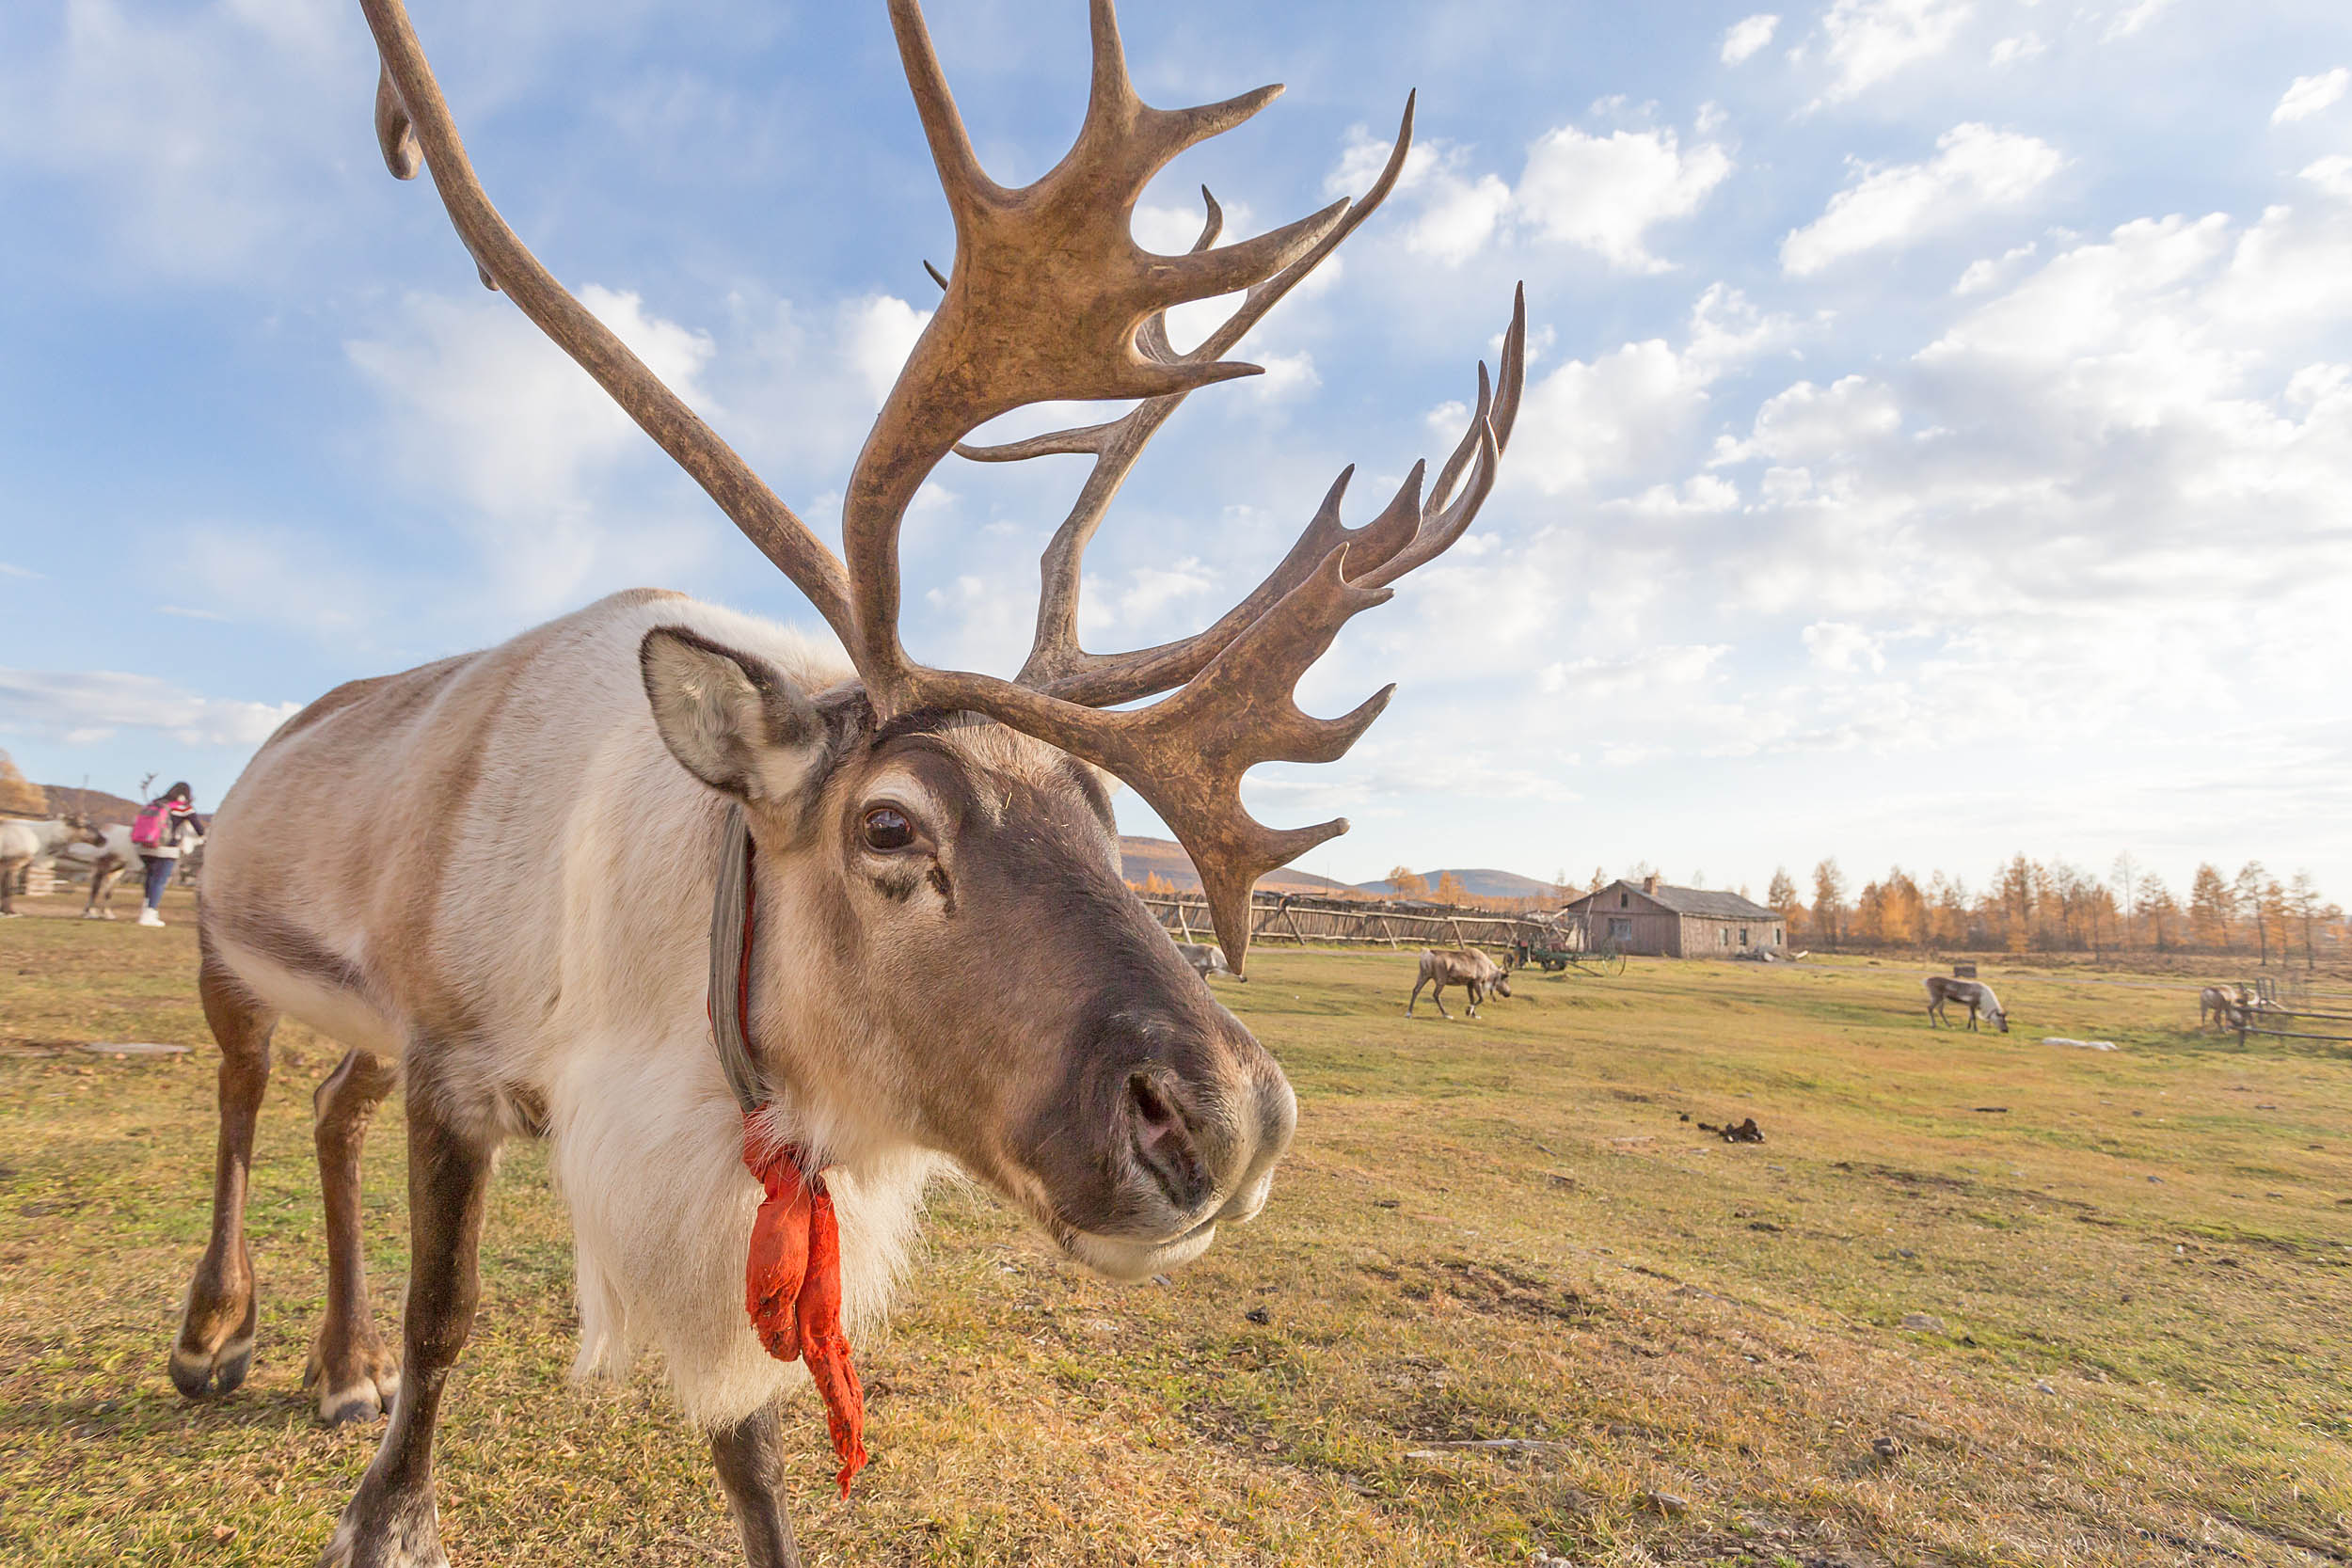 Reindeer might play an integral role in slowing down climate change